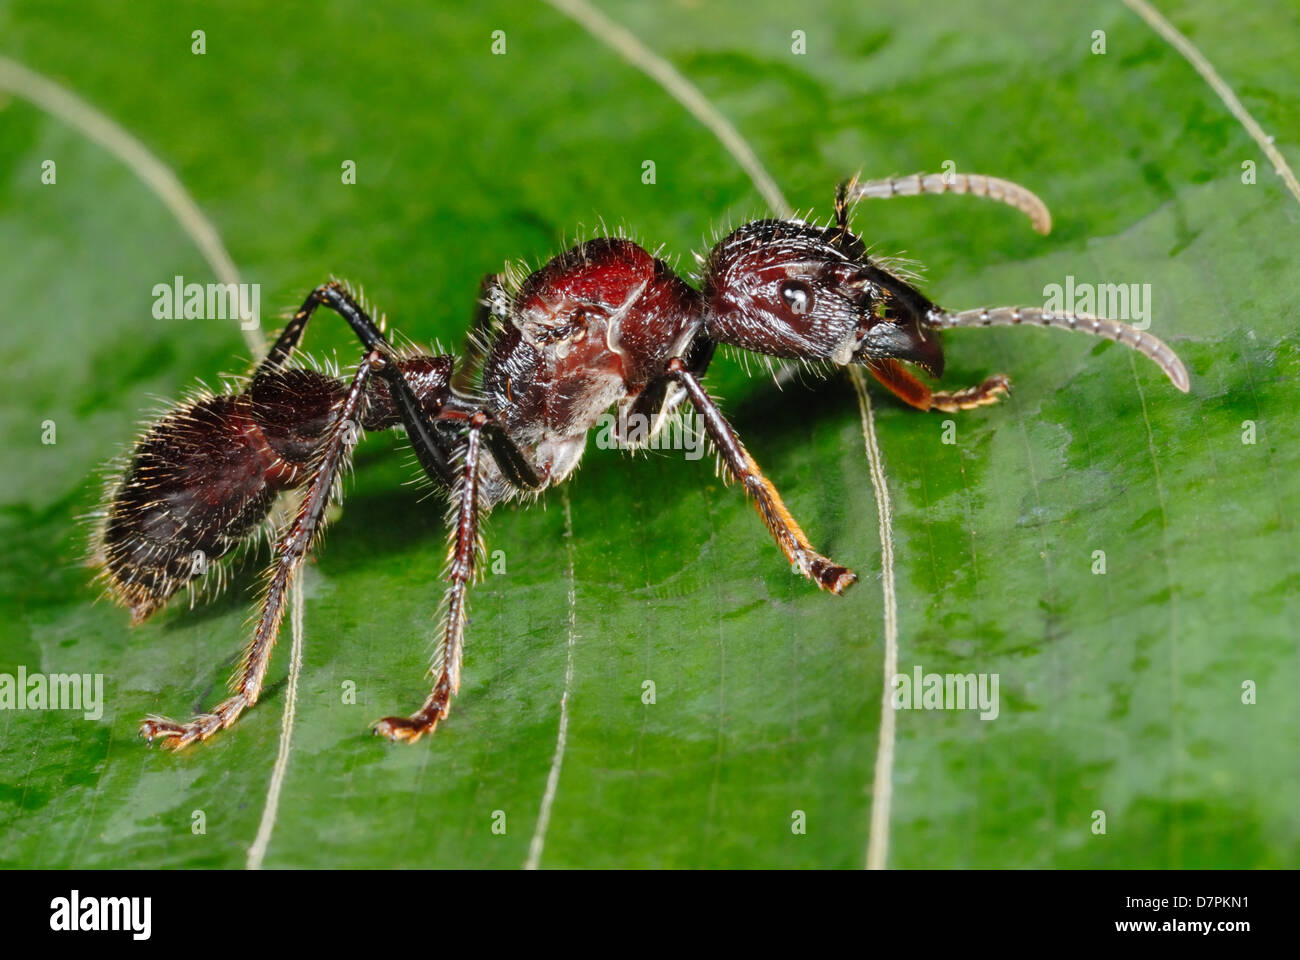 Enormous Bullet Ant (Paraponera clavata) in Costa Rica rainforest Stock Photo